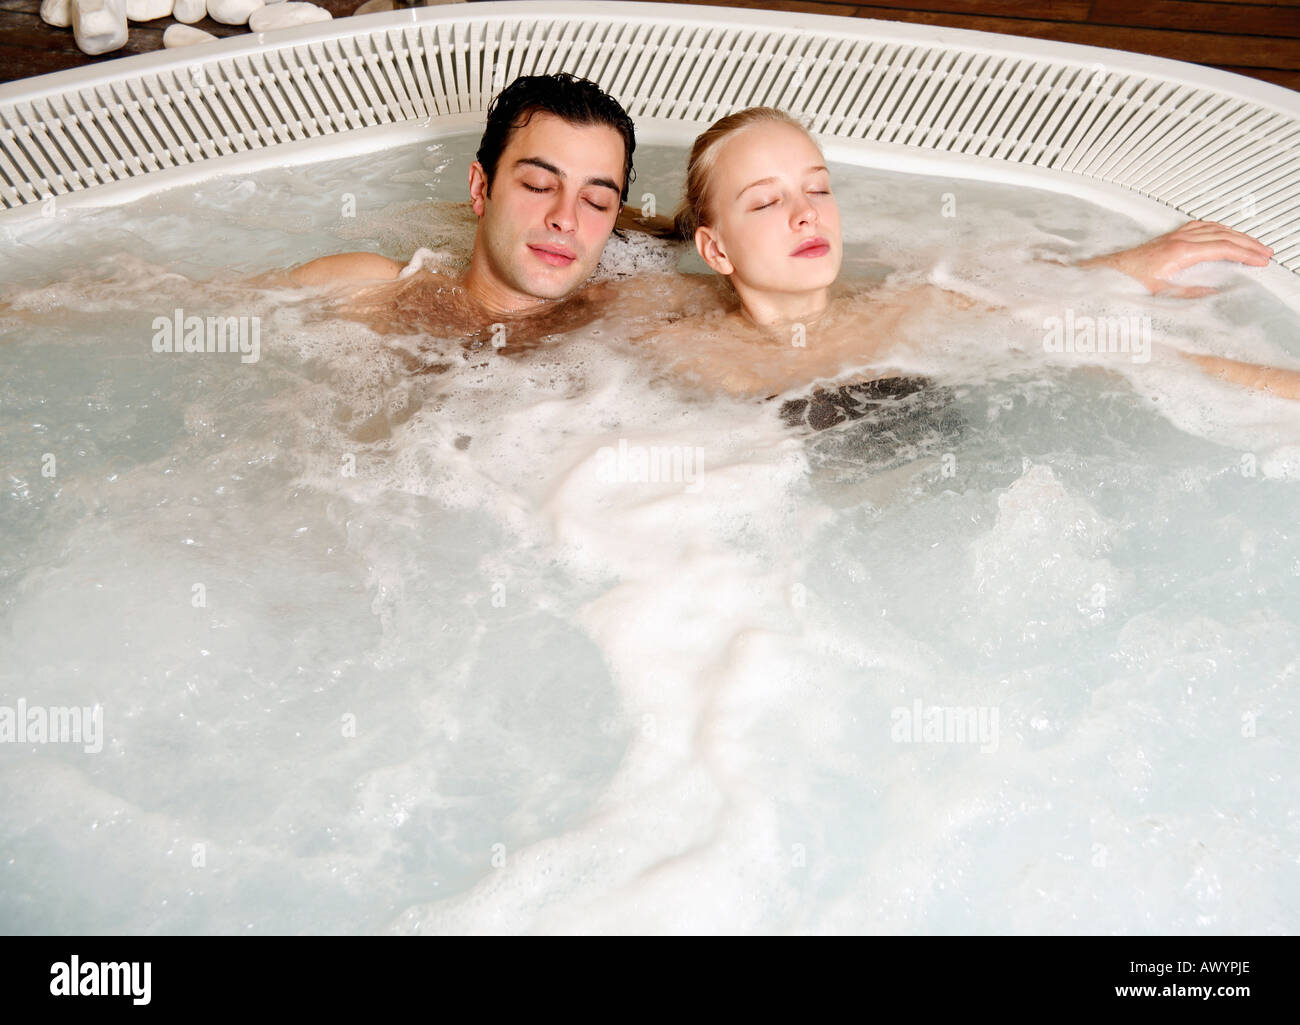 One man with one woman in jacuzzi at a spa Stock Photo: 9532333 - Alamy